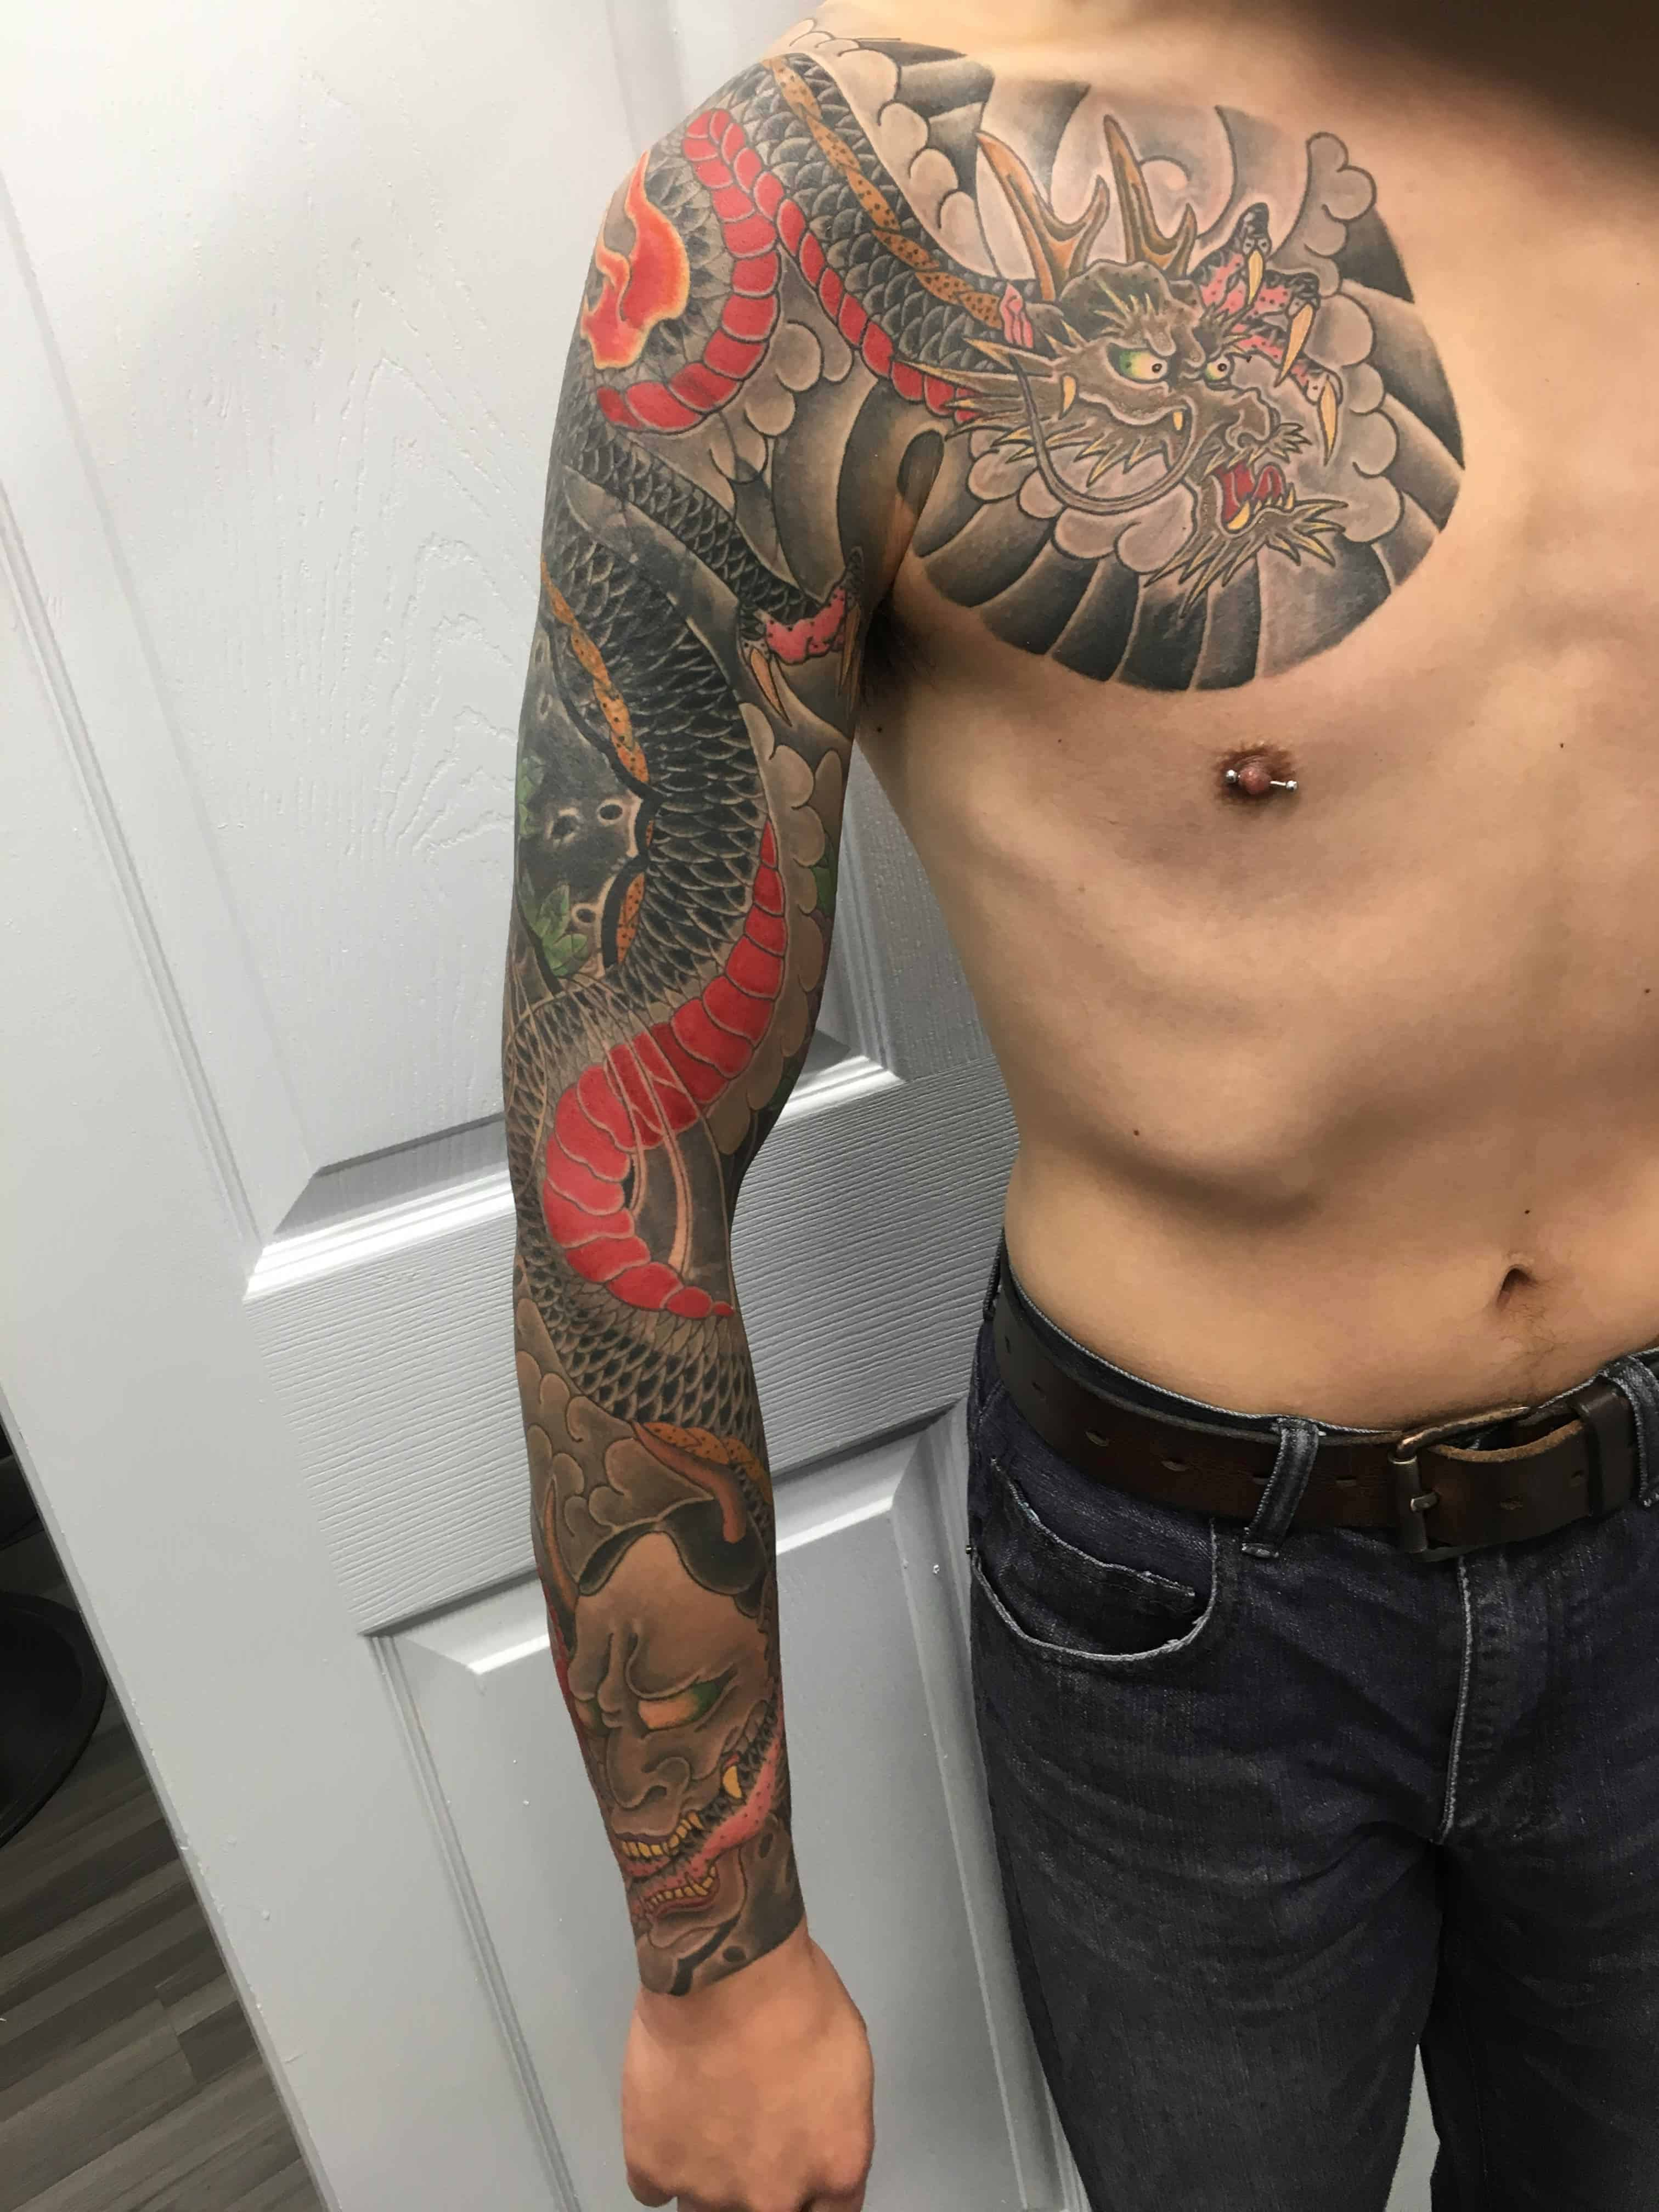 Cover-up-tattoo-of-Japanese-style-dragon-by-Ei-Omiya